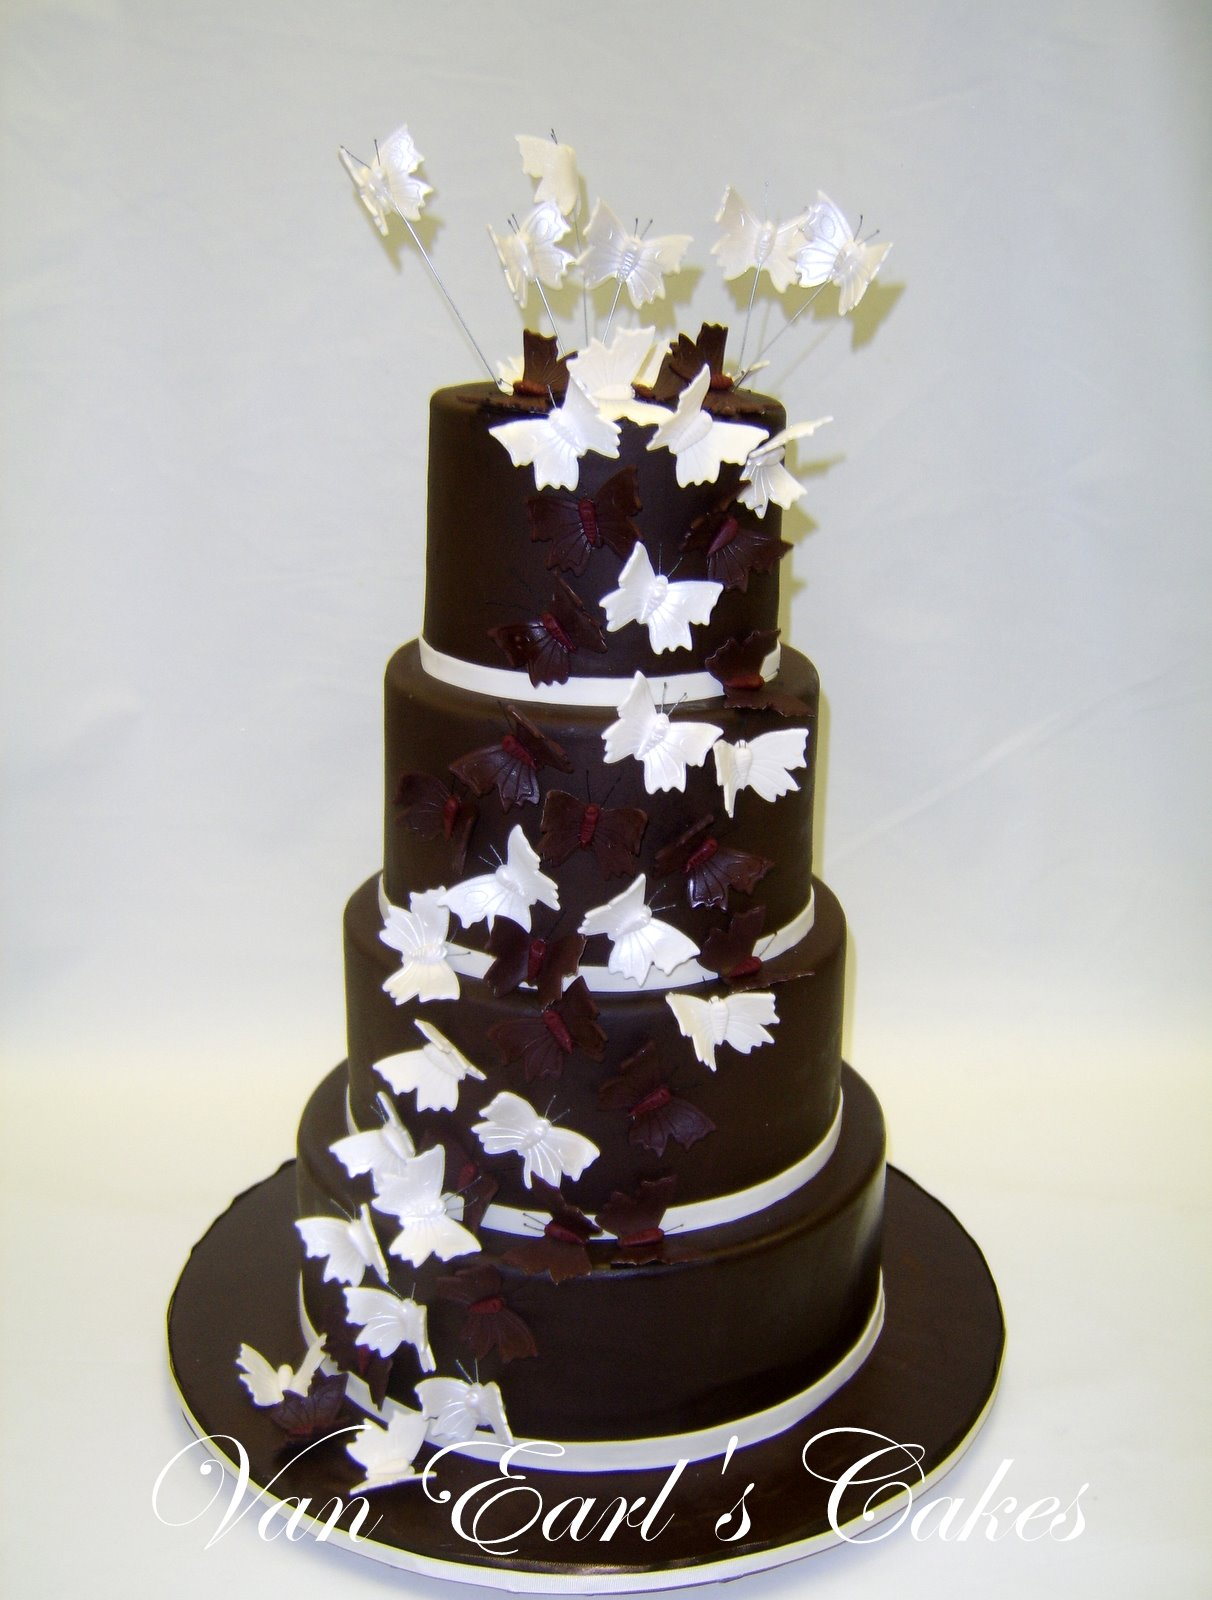 Latest Wedding Fashion: Chocolate Wedding Cakes for Your Big Day